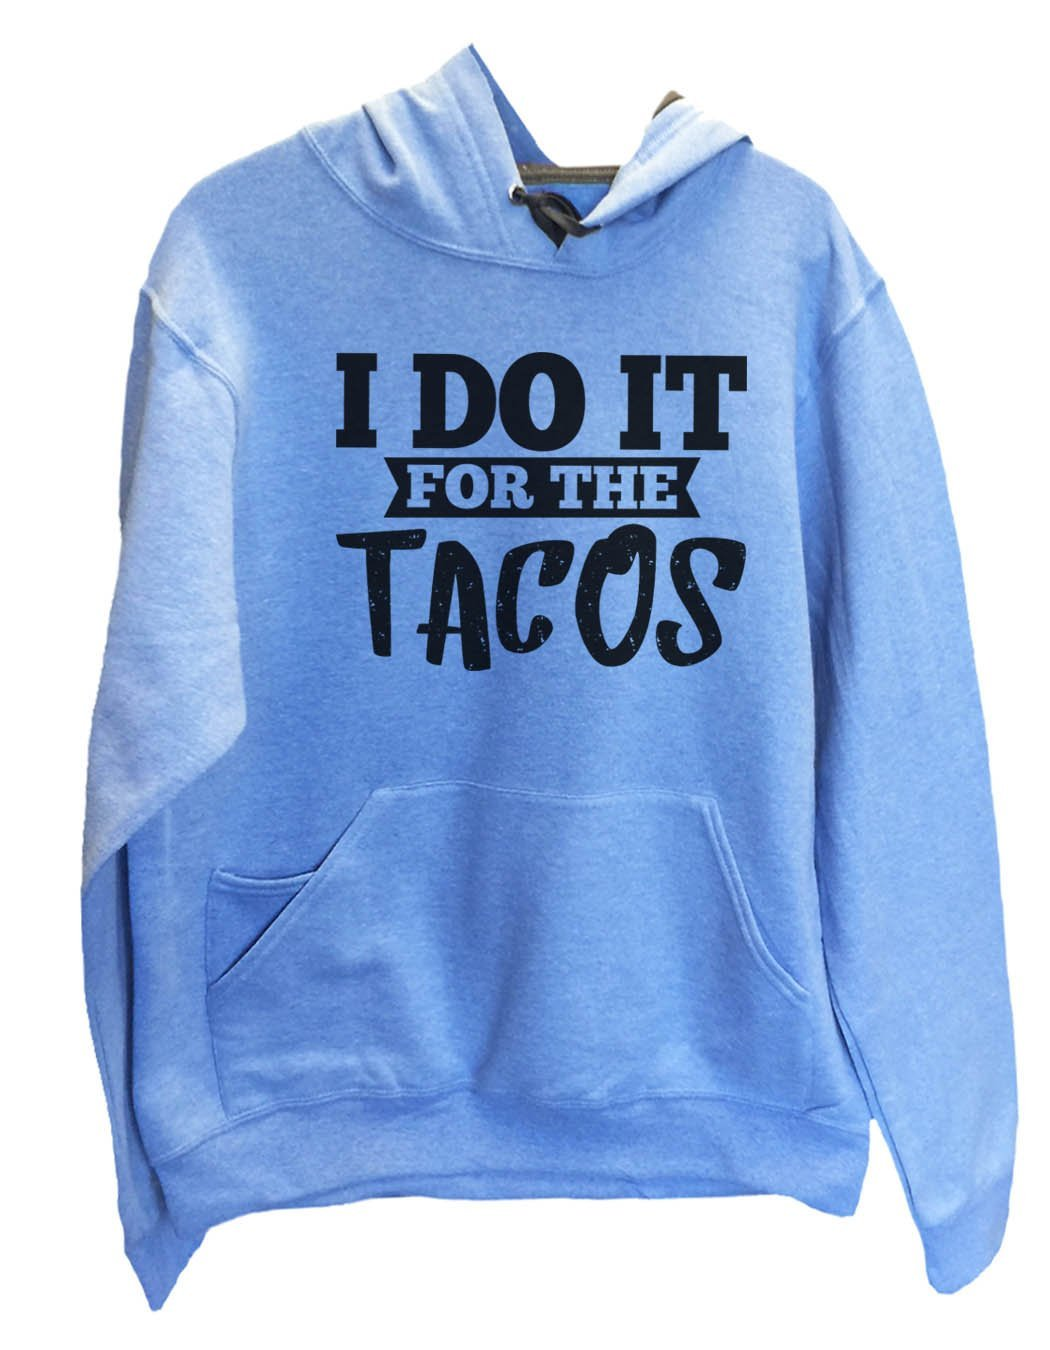 UNISEX HOODIE - I Do It For The Tacos - FUNNY MENS AND WOMENS HOODED SWEATSHIRTS - 2116 Funny Shirt Small / North Carolina Blue